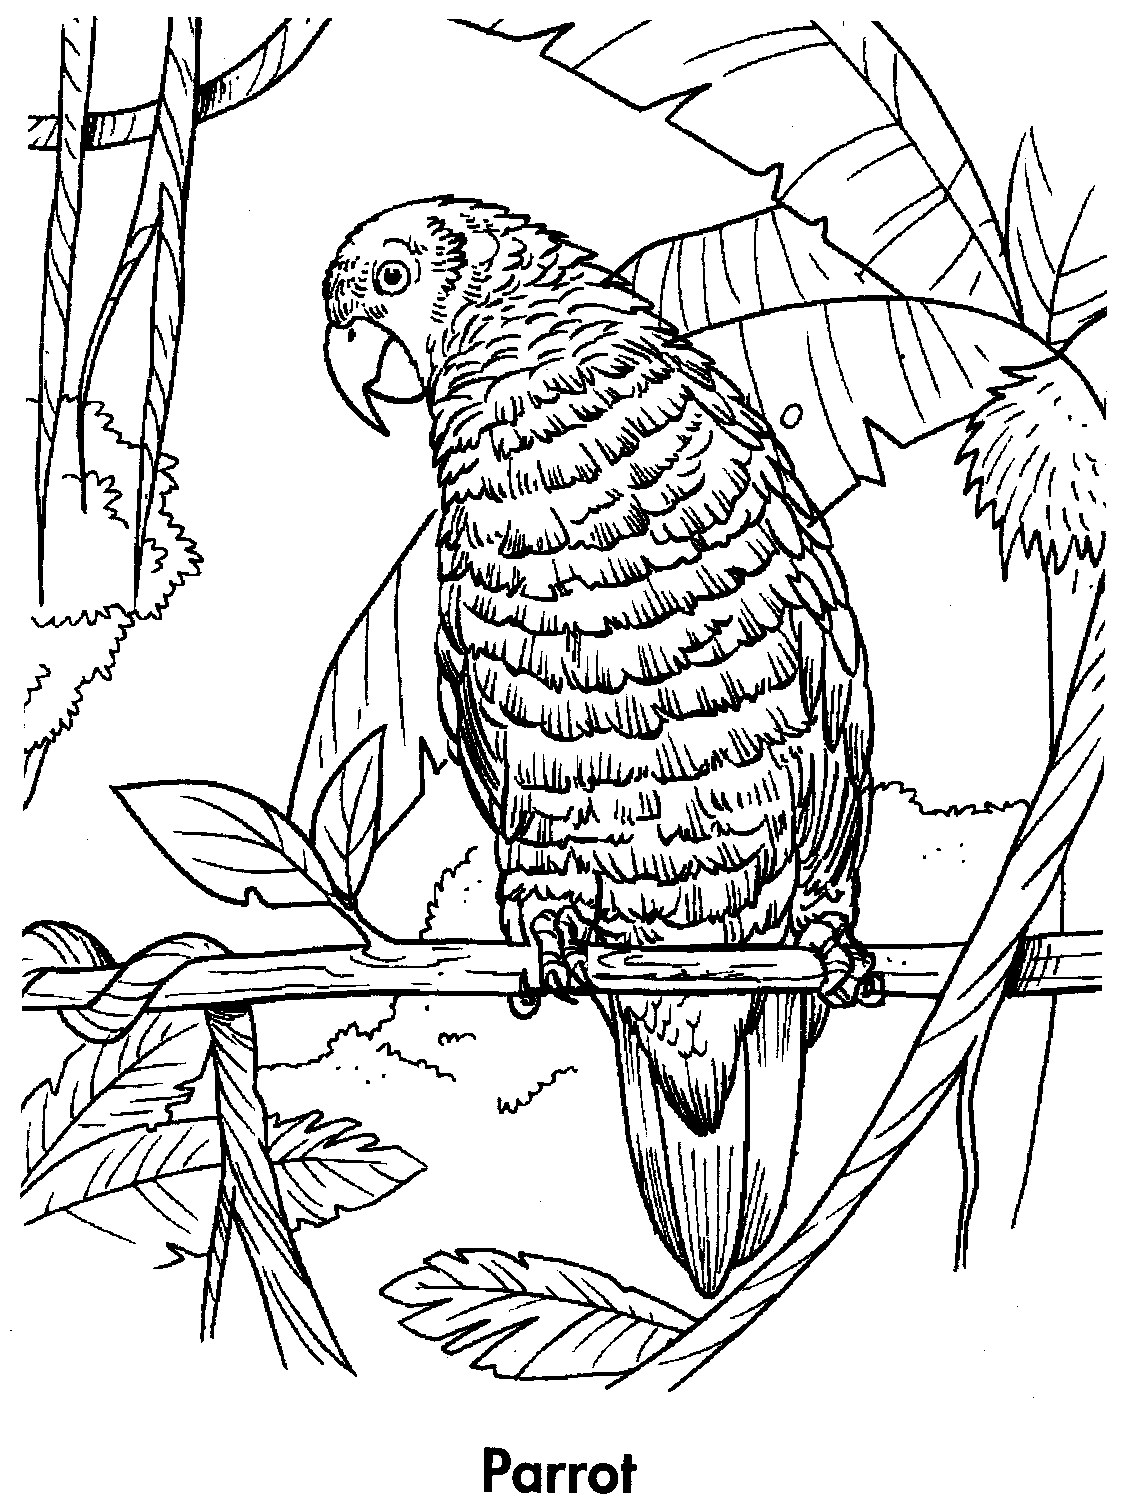 parrots coloring pages 25 cute parrot coloring pages your toddler will love to color parrots pages coloring